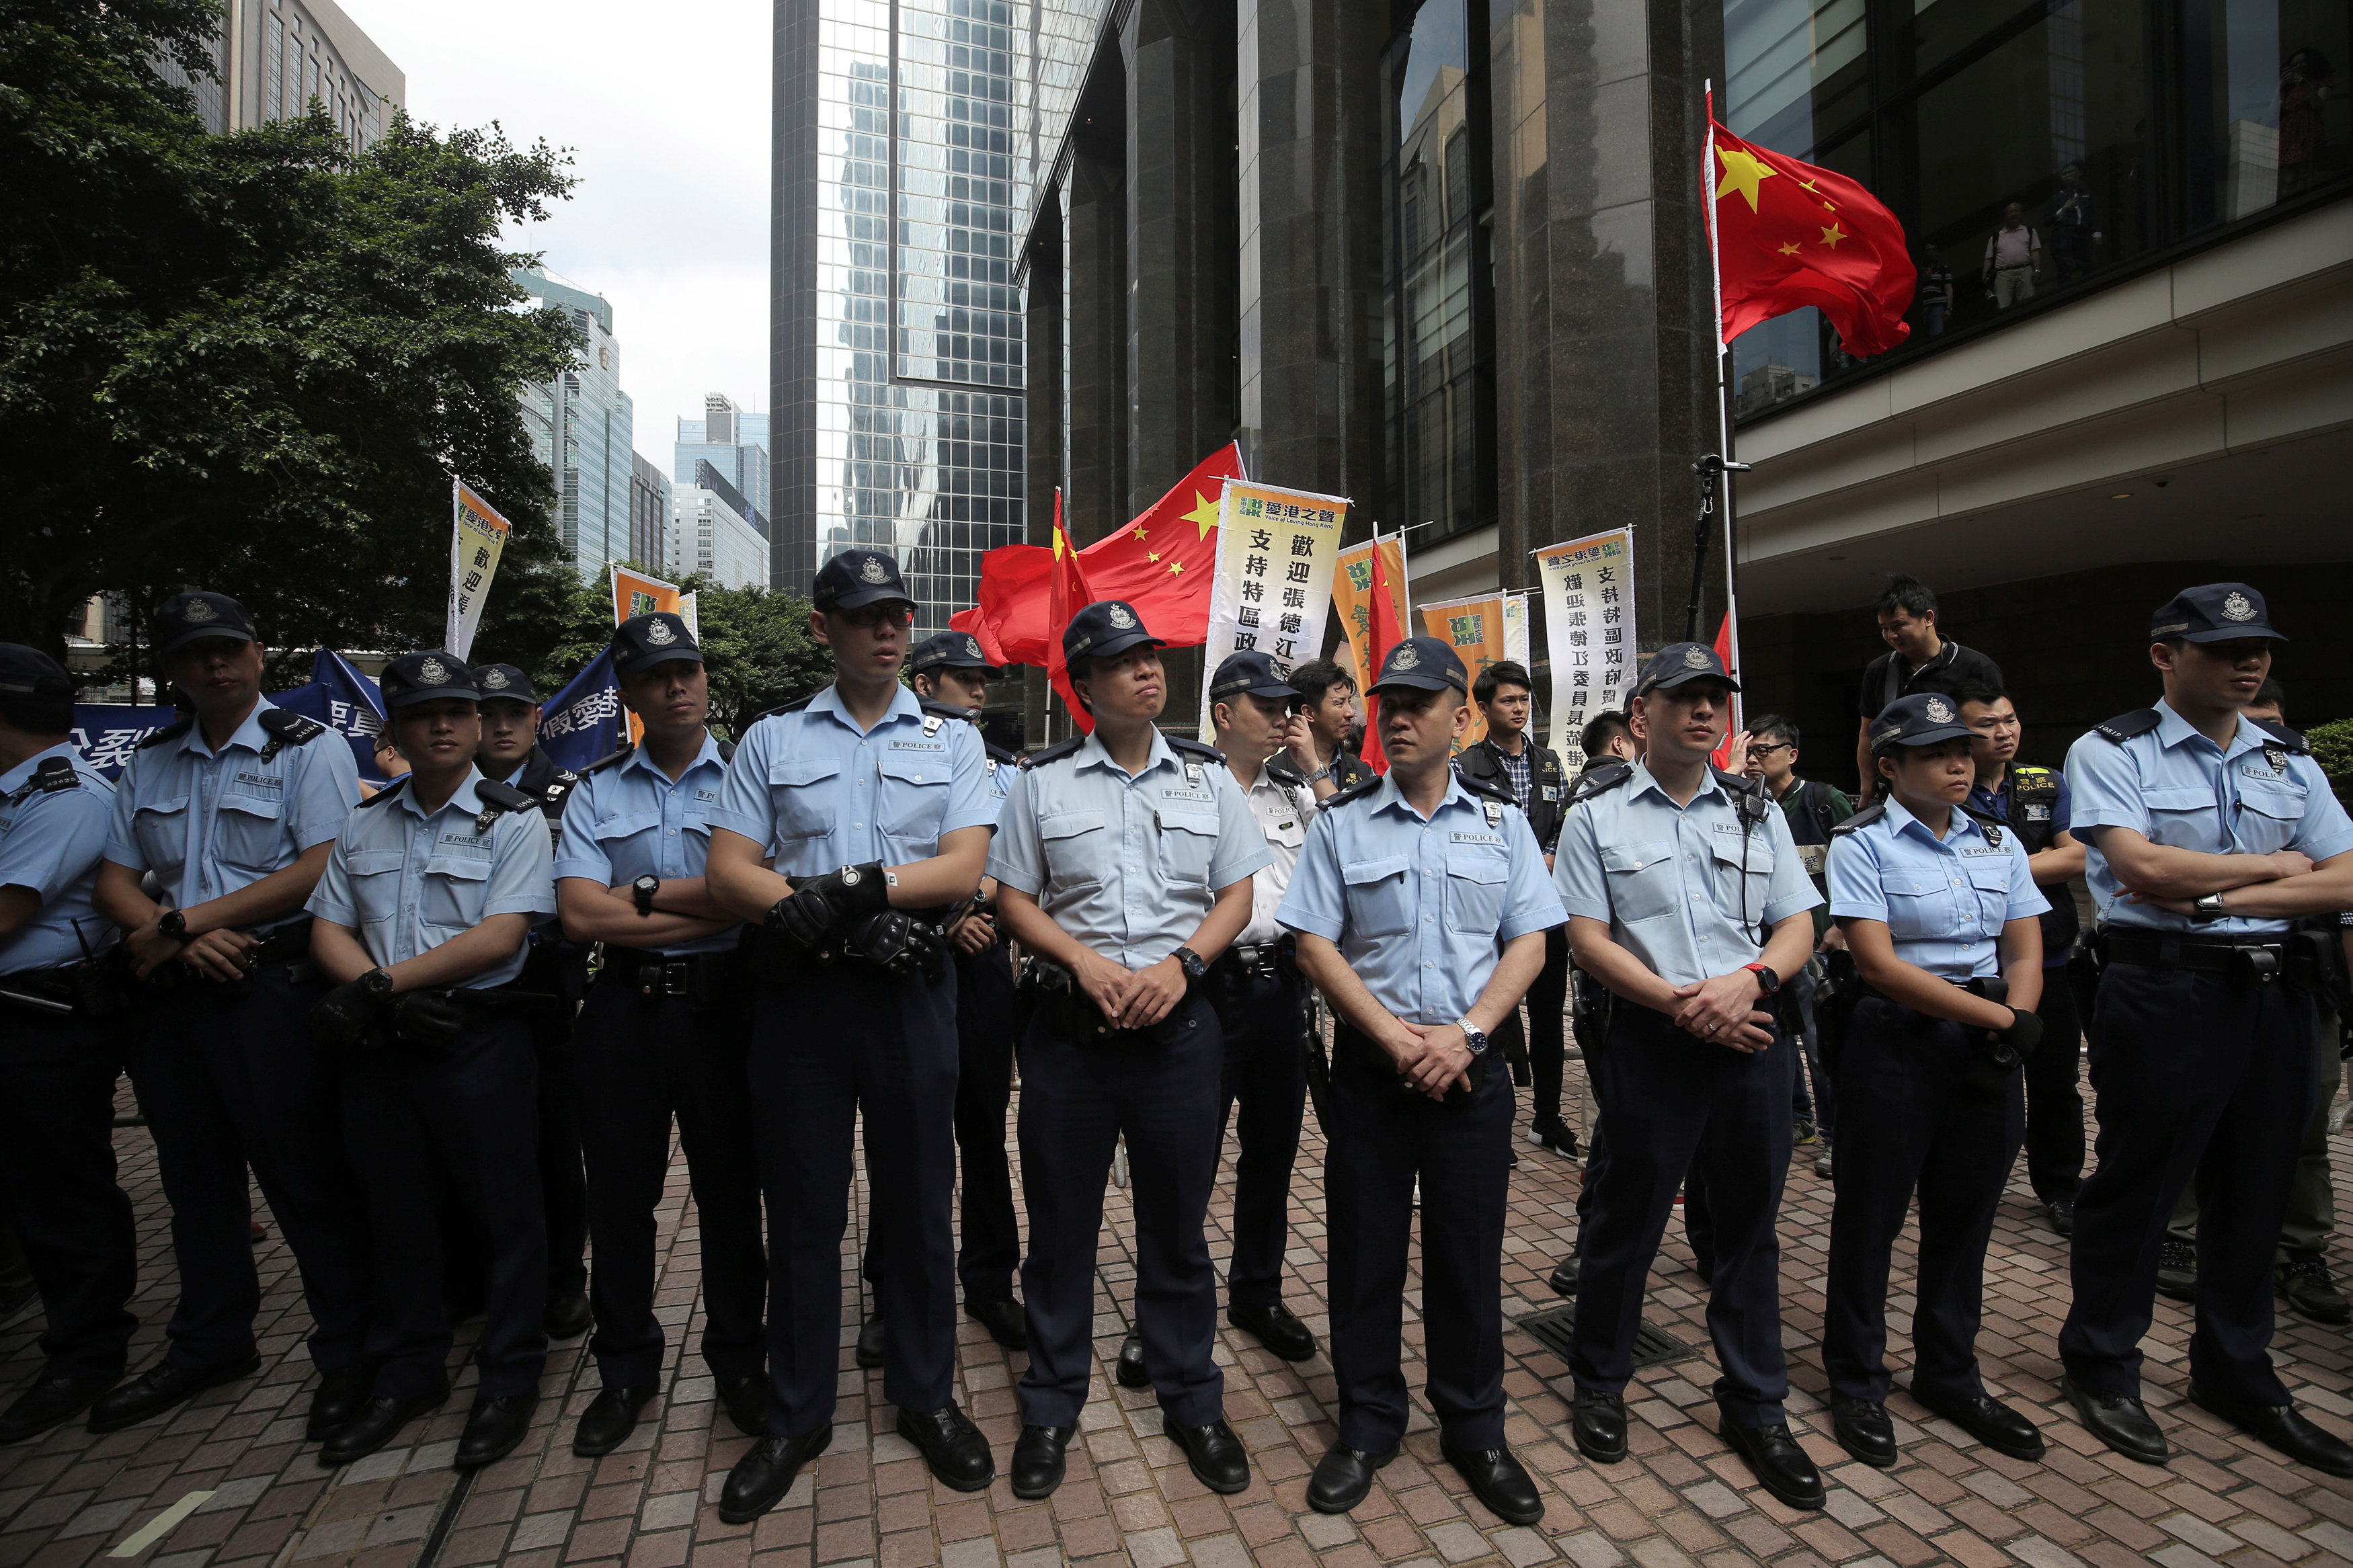 Police officers patrol in front of supporters of visiting Zhang Dejiang, the chairman of China's National People's Congress, during a protest against him in Hong Kong on May 18, 2016